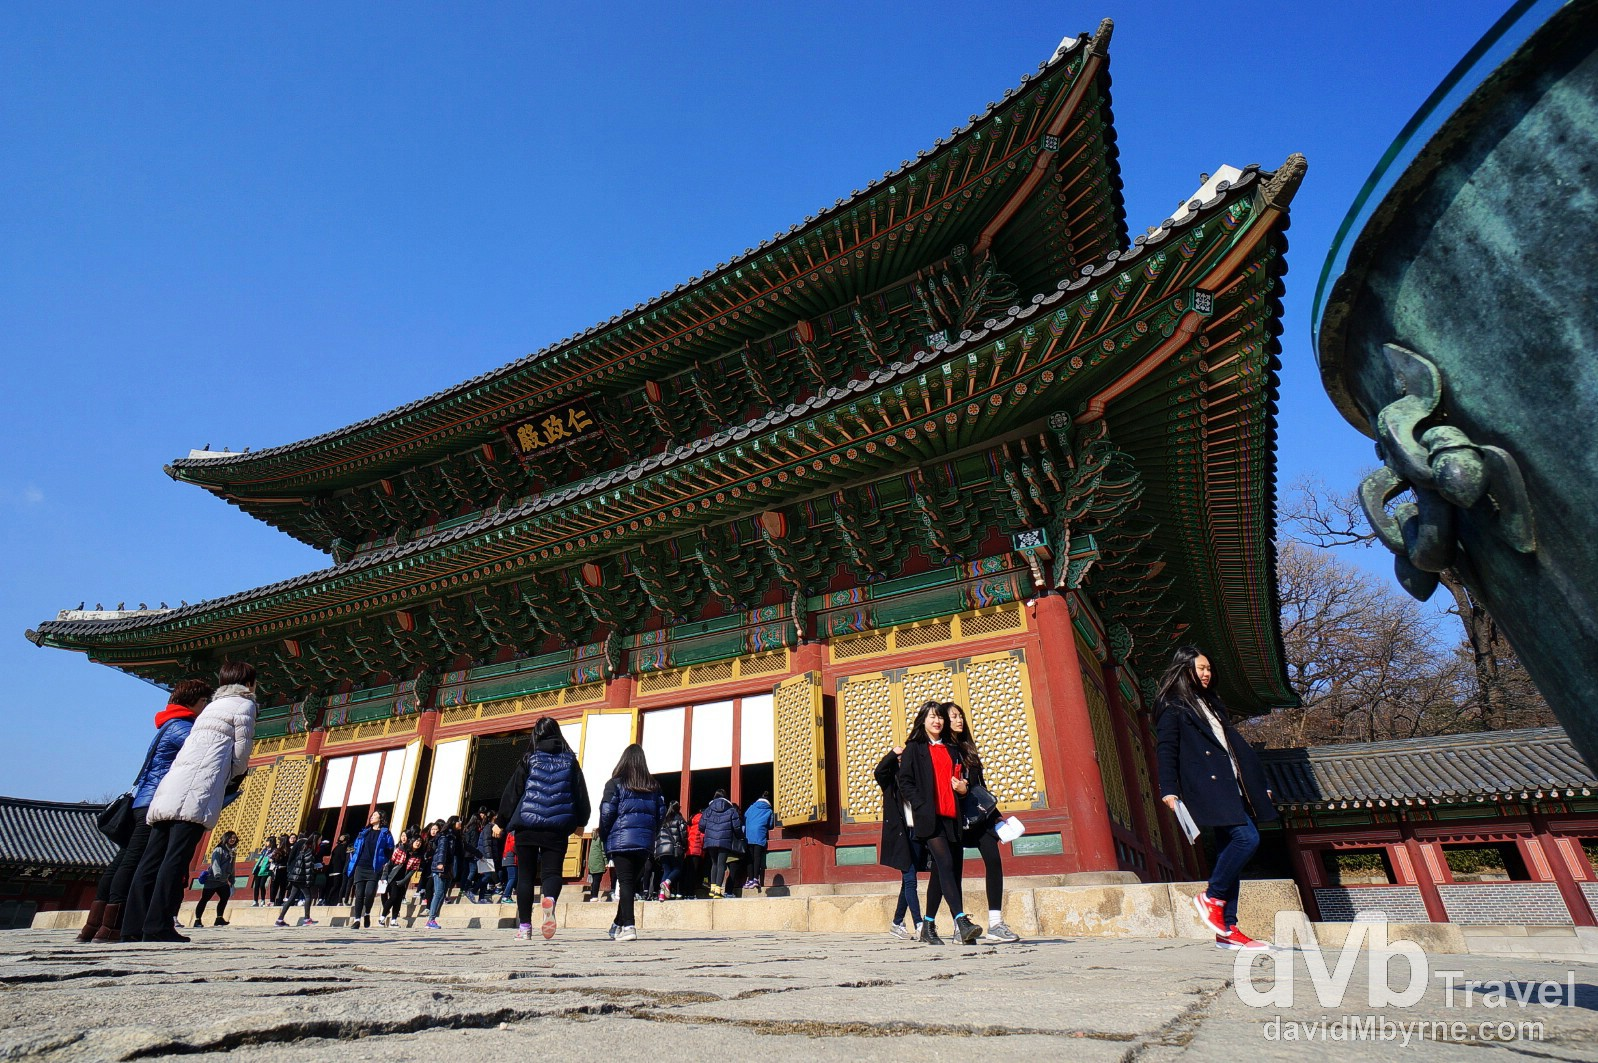 Injeongjeon, the main hall of the UNESCO World Heritage-listed Changdeokgung Palace Complex in Seoul, South Korea. January 18th 2014